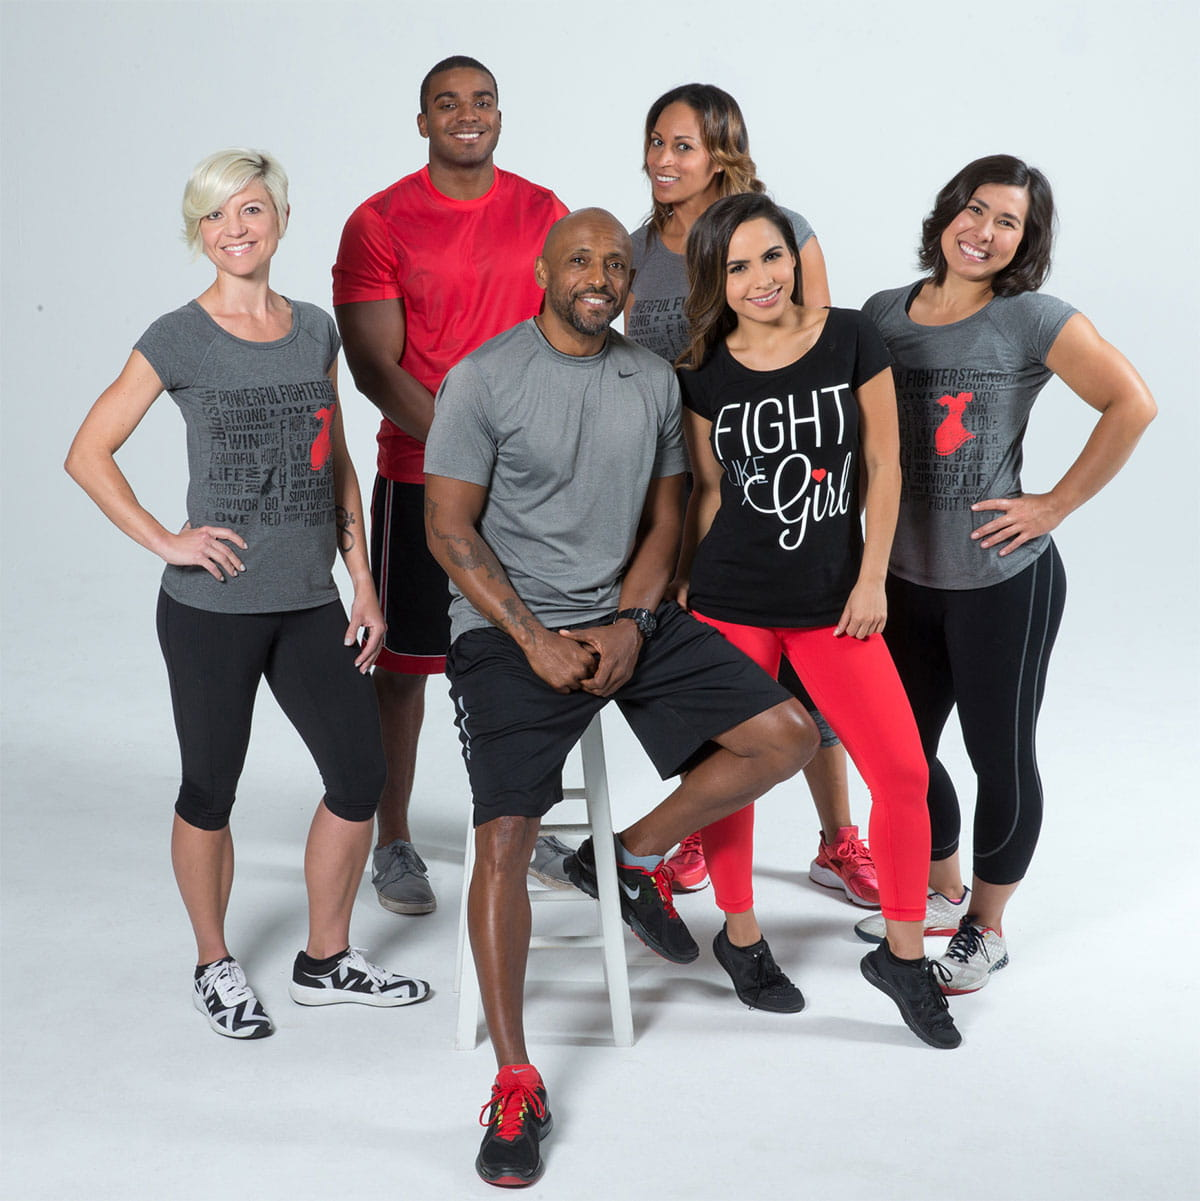 Group portrait of diverse adults in athletic attire